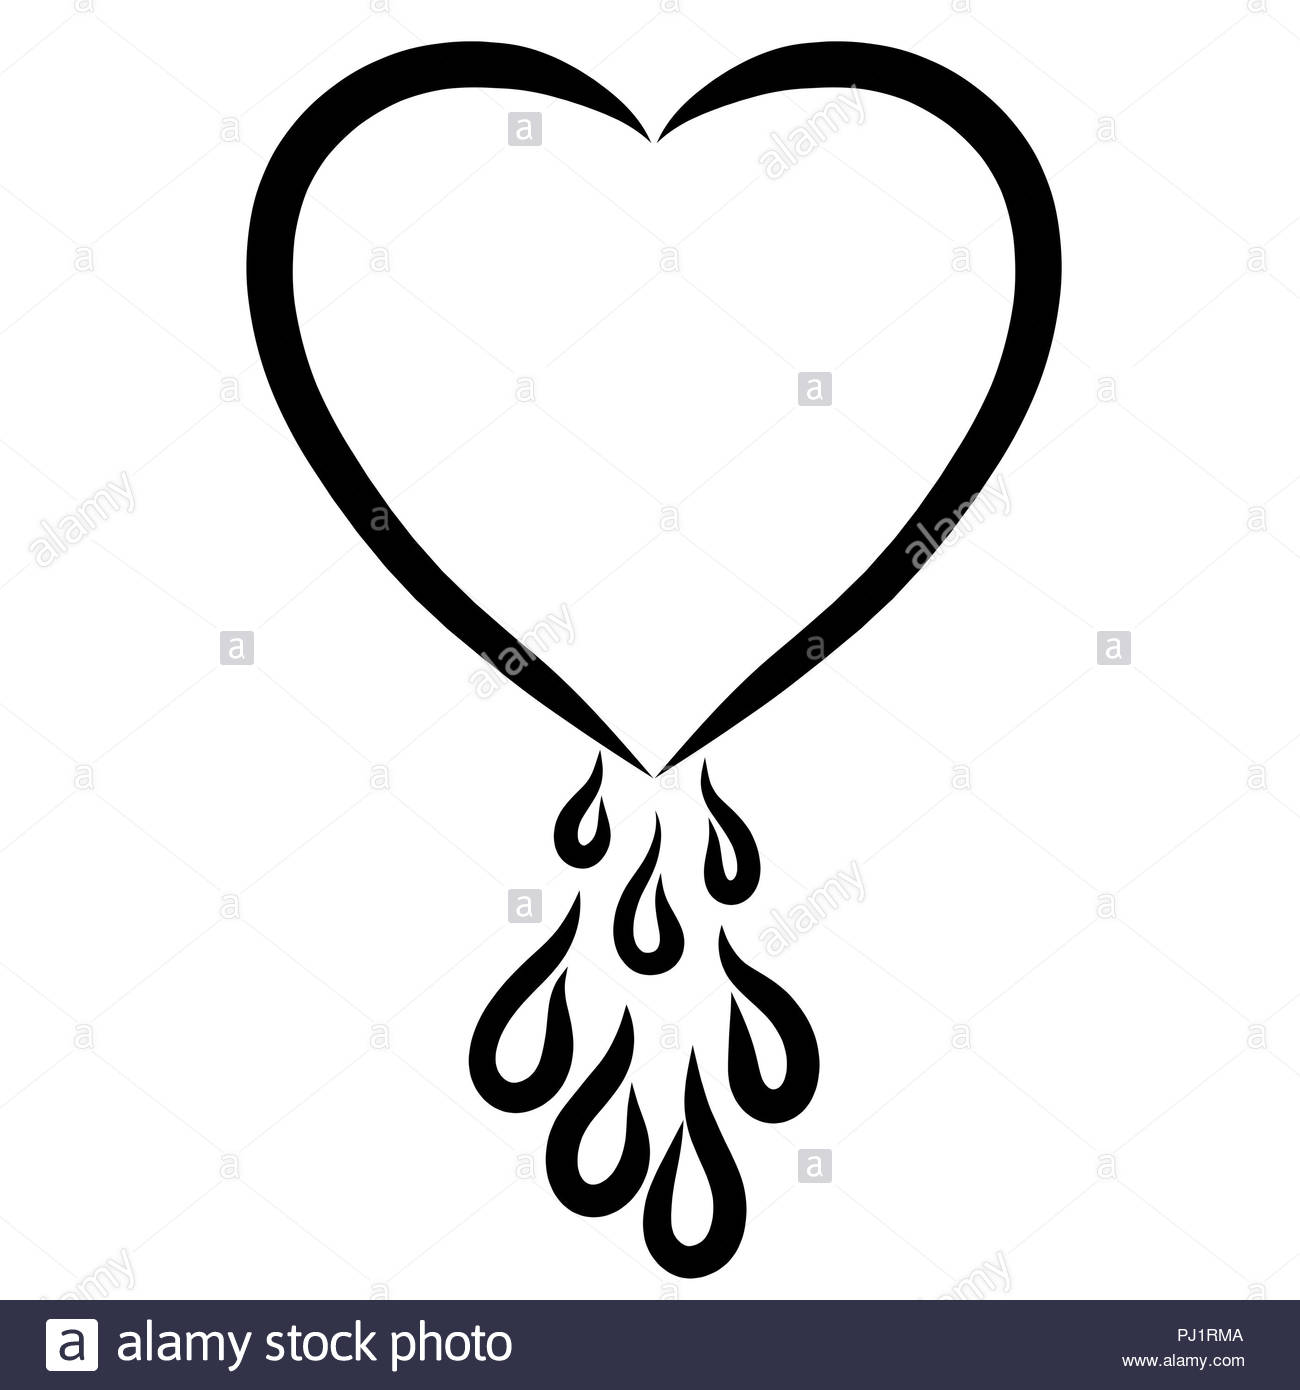 Heart With Drops Of Blood Or Tears Stock Photo 217628778 Alamy